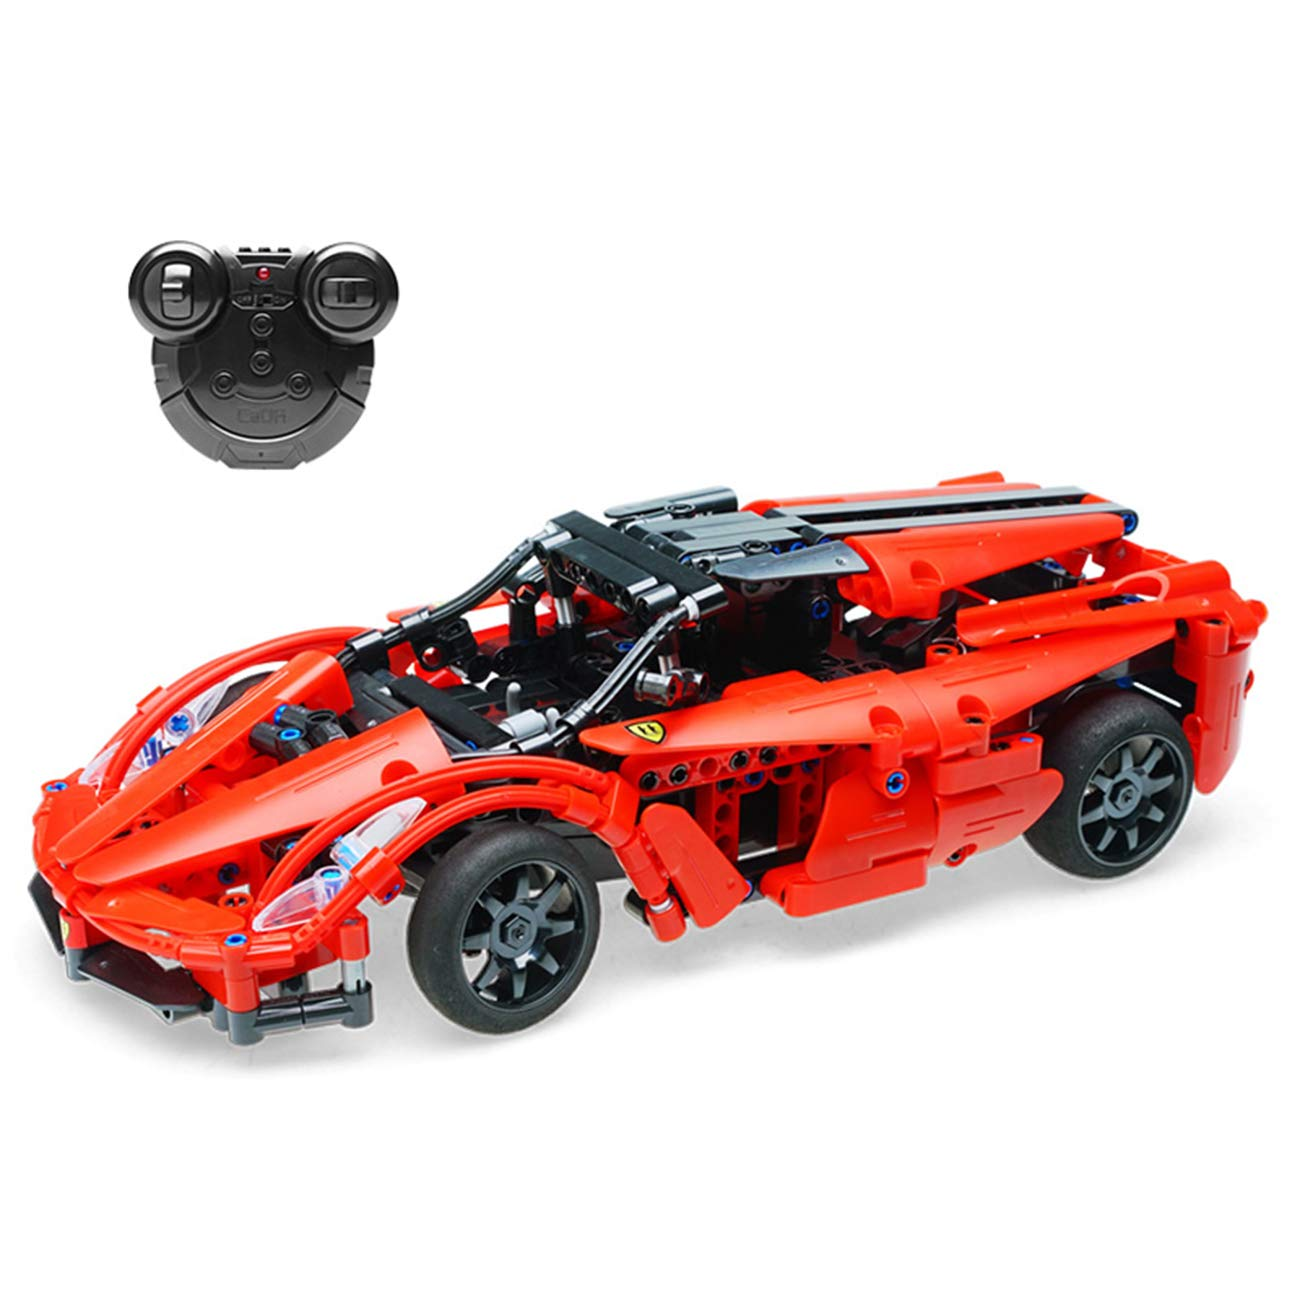 The perseids Car Building kit DIY Toy, 2.4 Ghz Remote Control Vehicle in Scarlet 380 pcs USB Rechargeable, Gift 6-14 Years Old Boys Girls